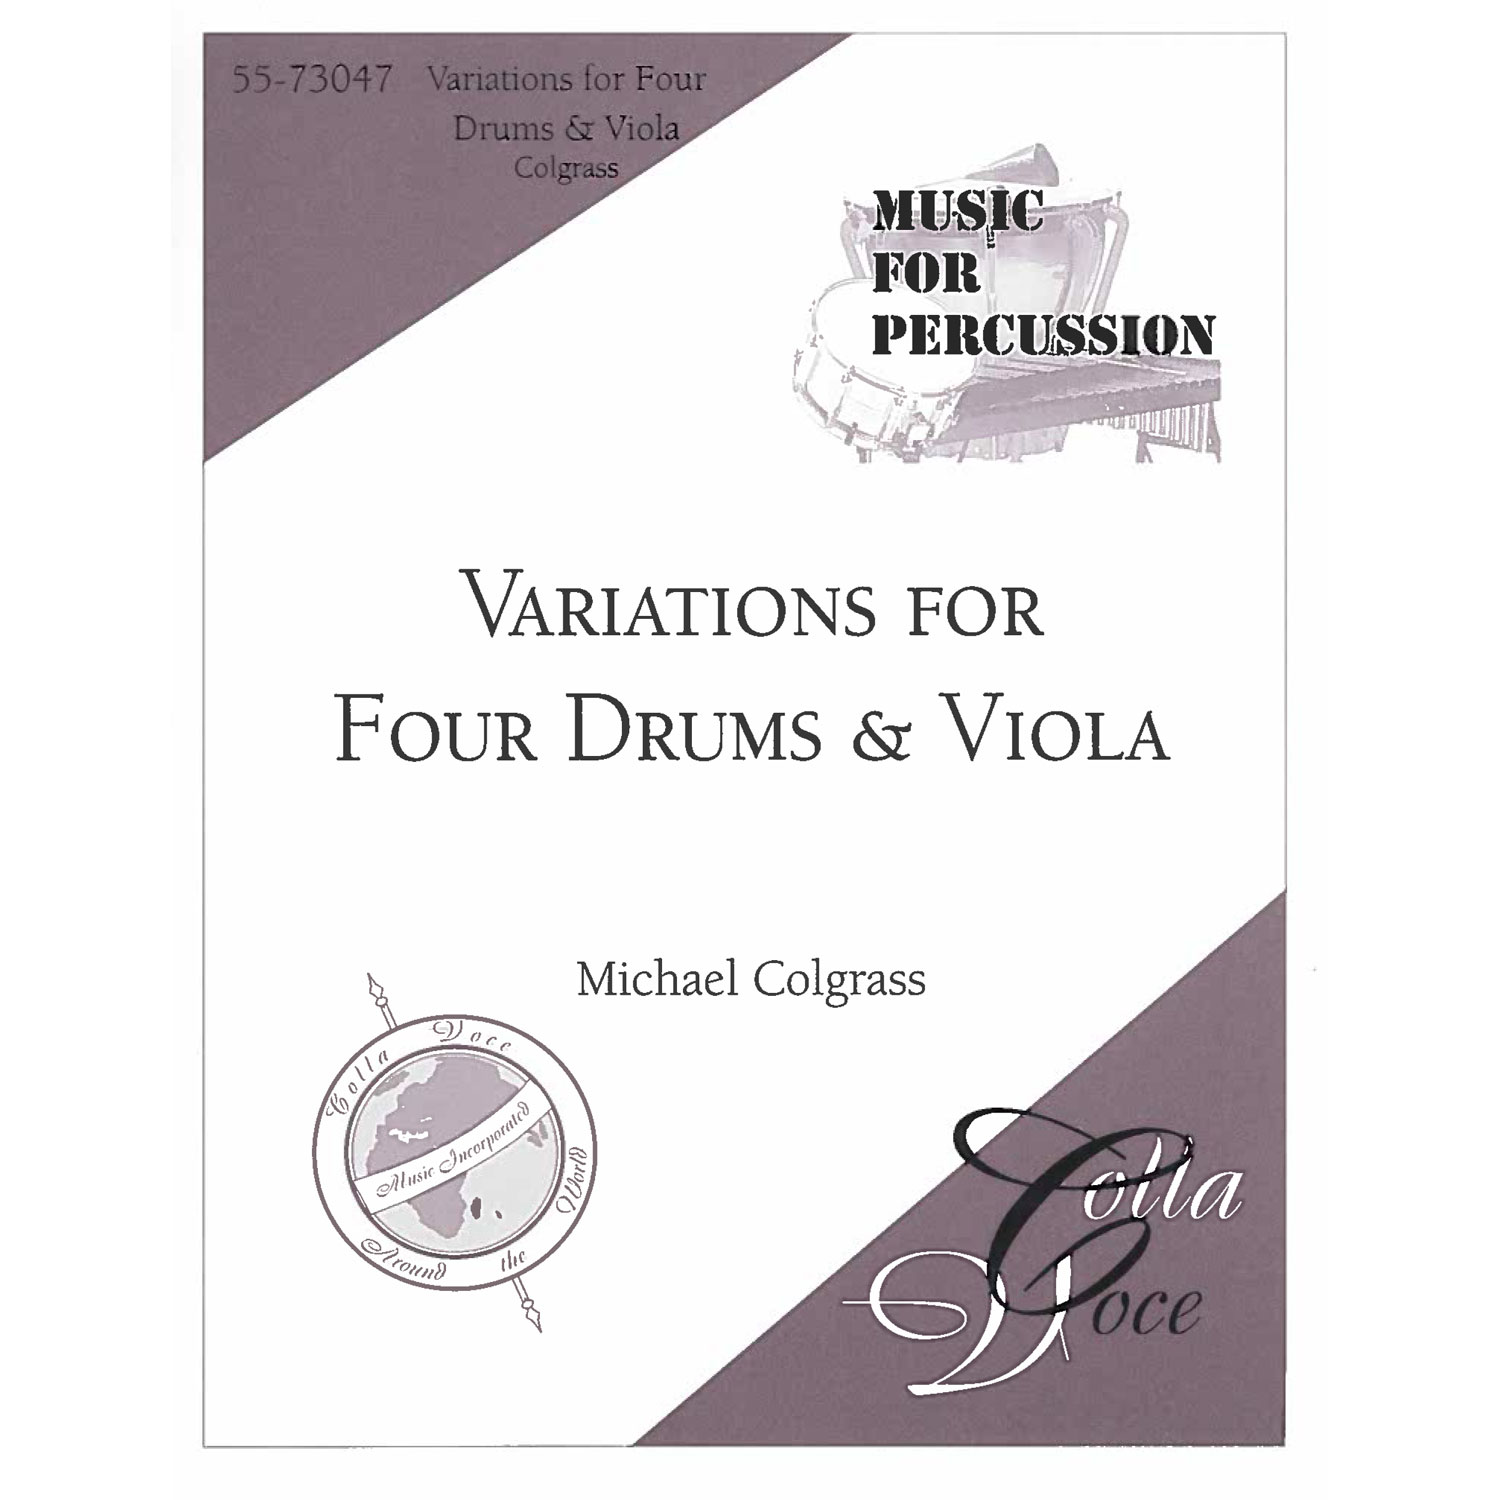 Variations for Four Drums and Viola by Michael Colgrass